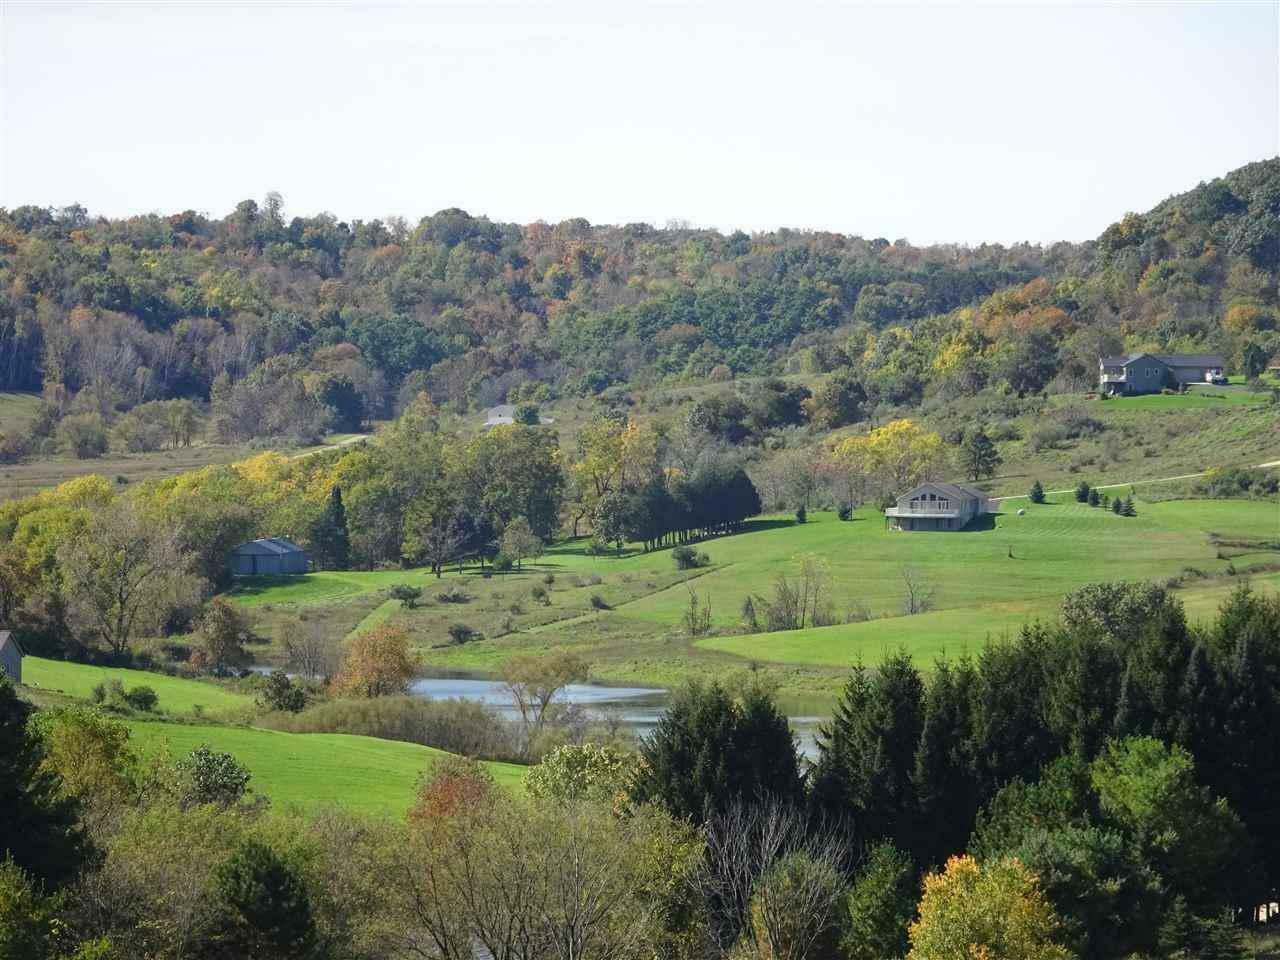 Beautiful Vacant Land For Sale In Wisconsin Dutch Hollow Lake Access .66 Acre - $1,075.00